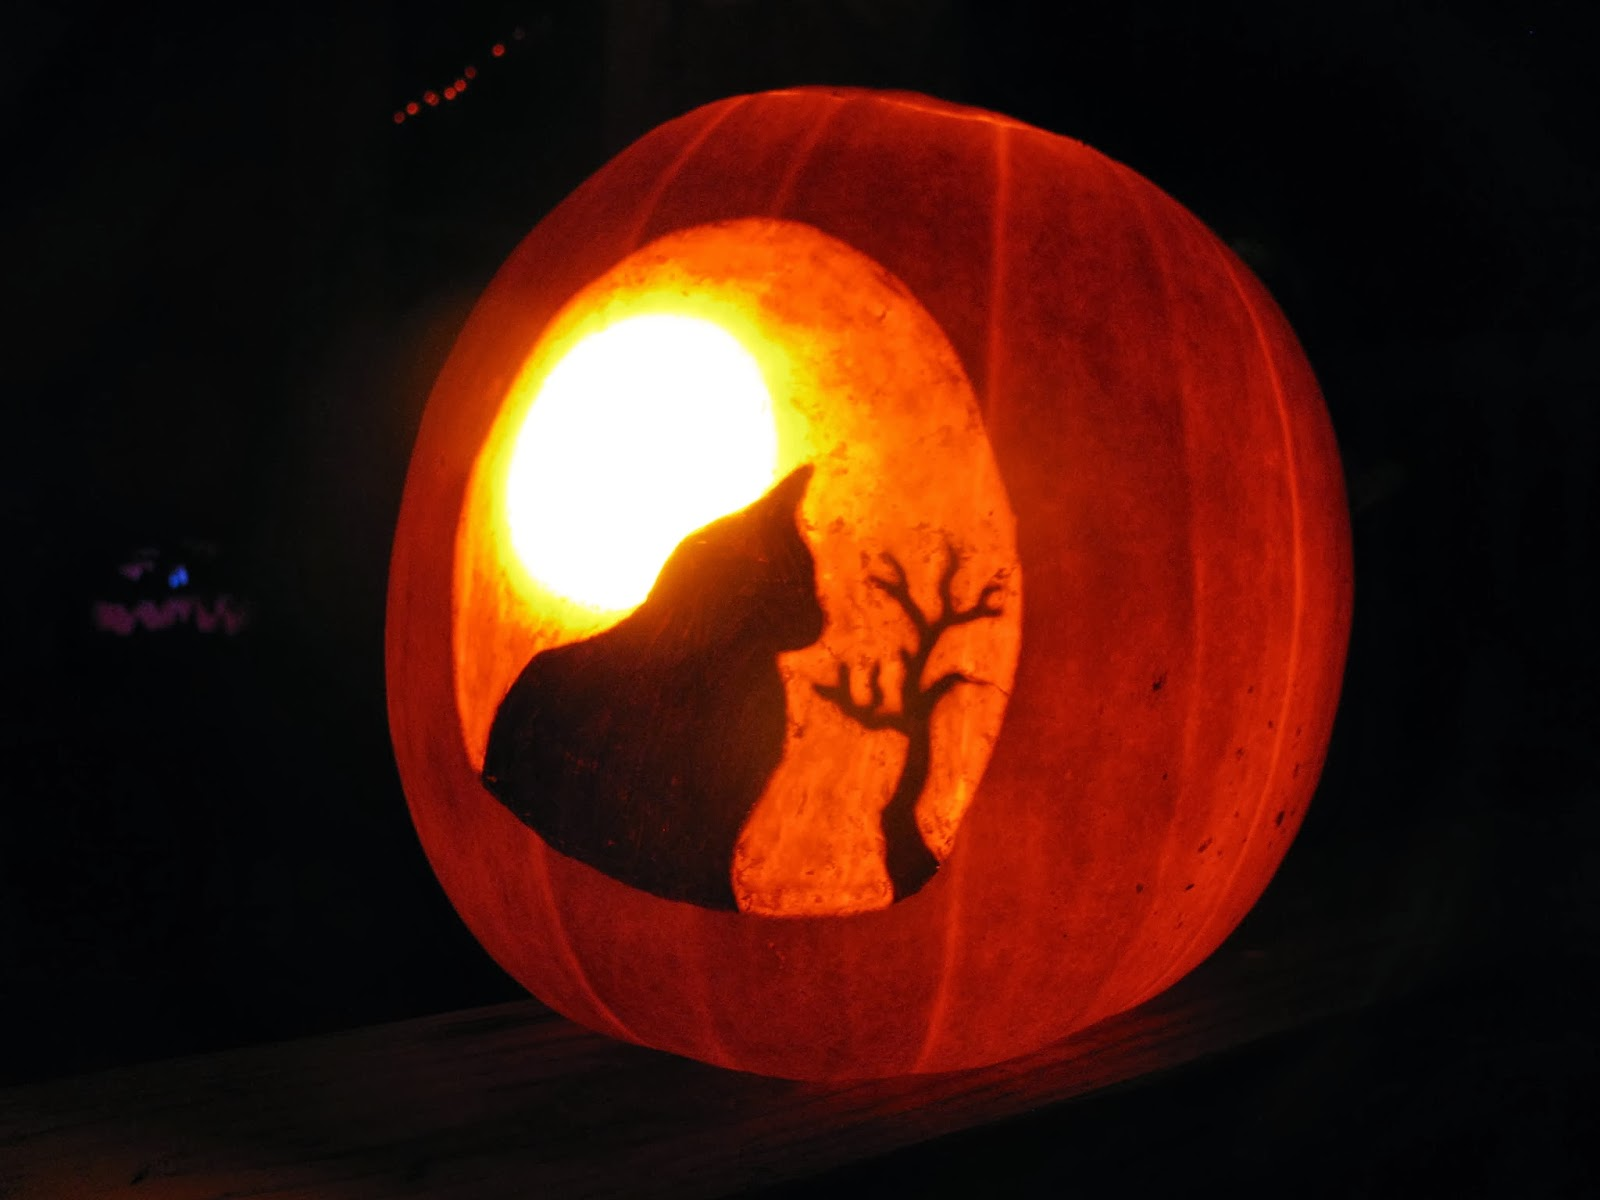 Pumpkin carving ideas for halloween 2017 some of the best Cat pumpkin carving patterns